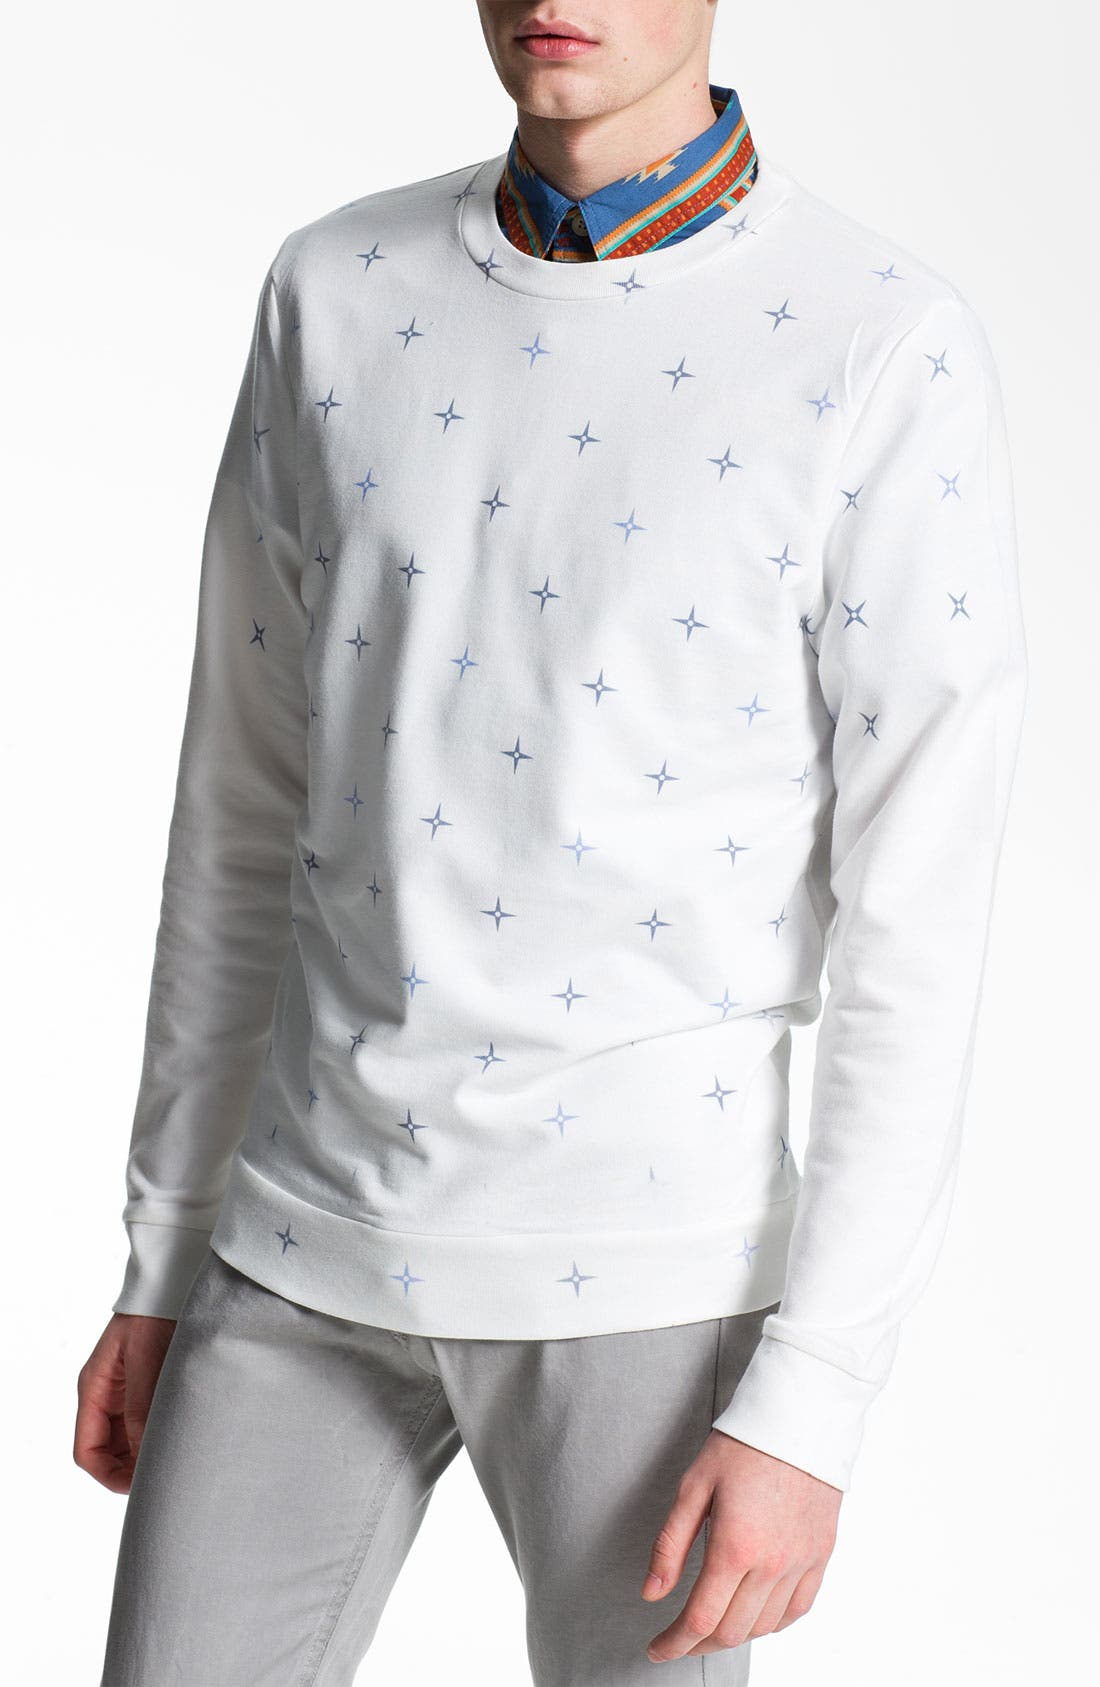 Main Image - Topman All Over Star Pattern Crewneck Sweatshirt (Nordstrom Exclusive)